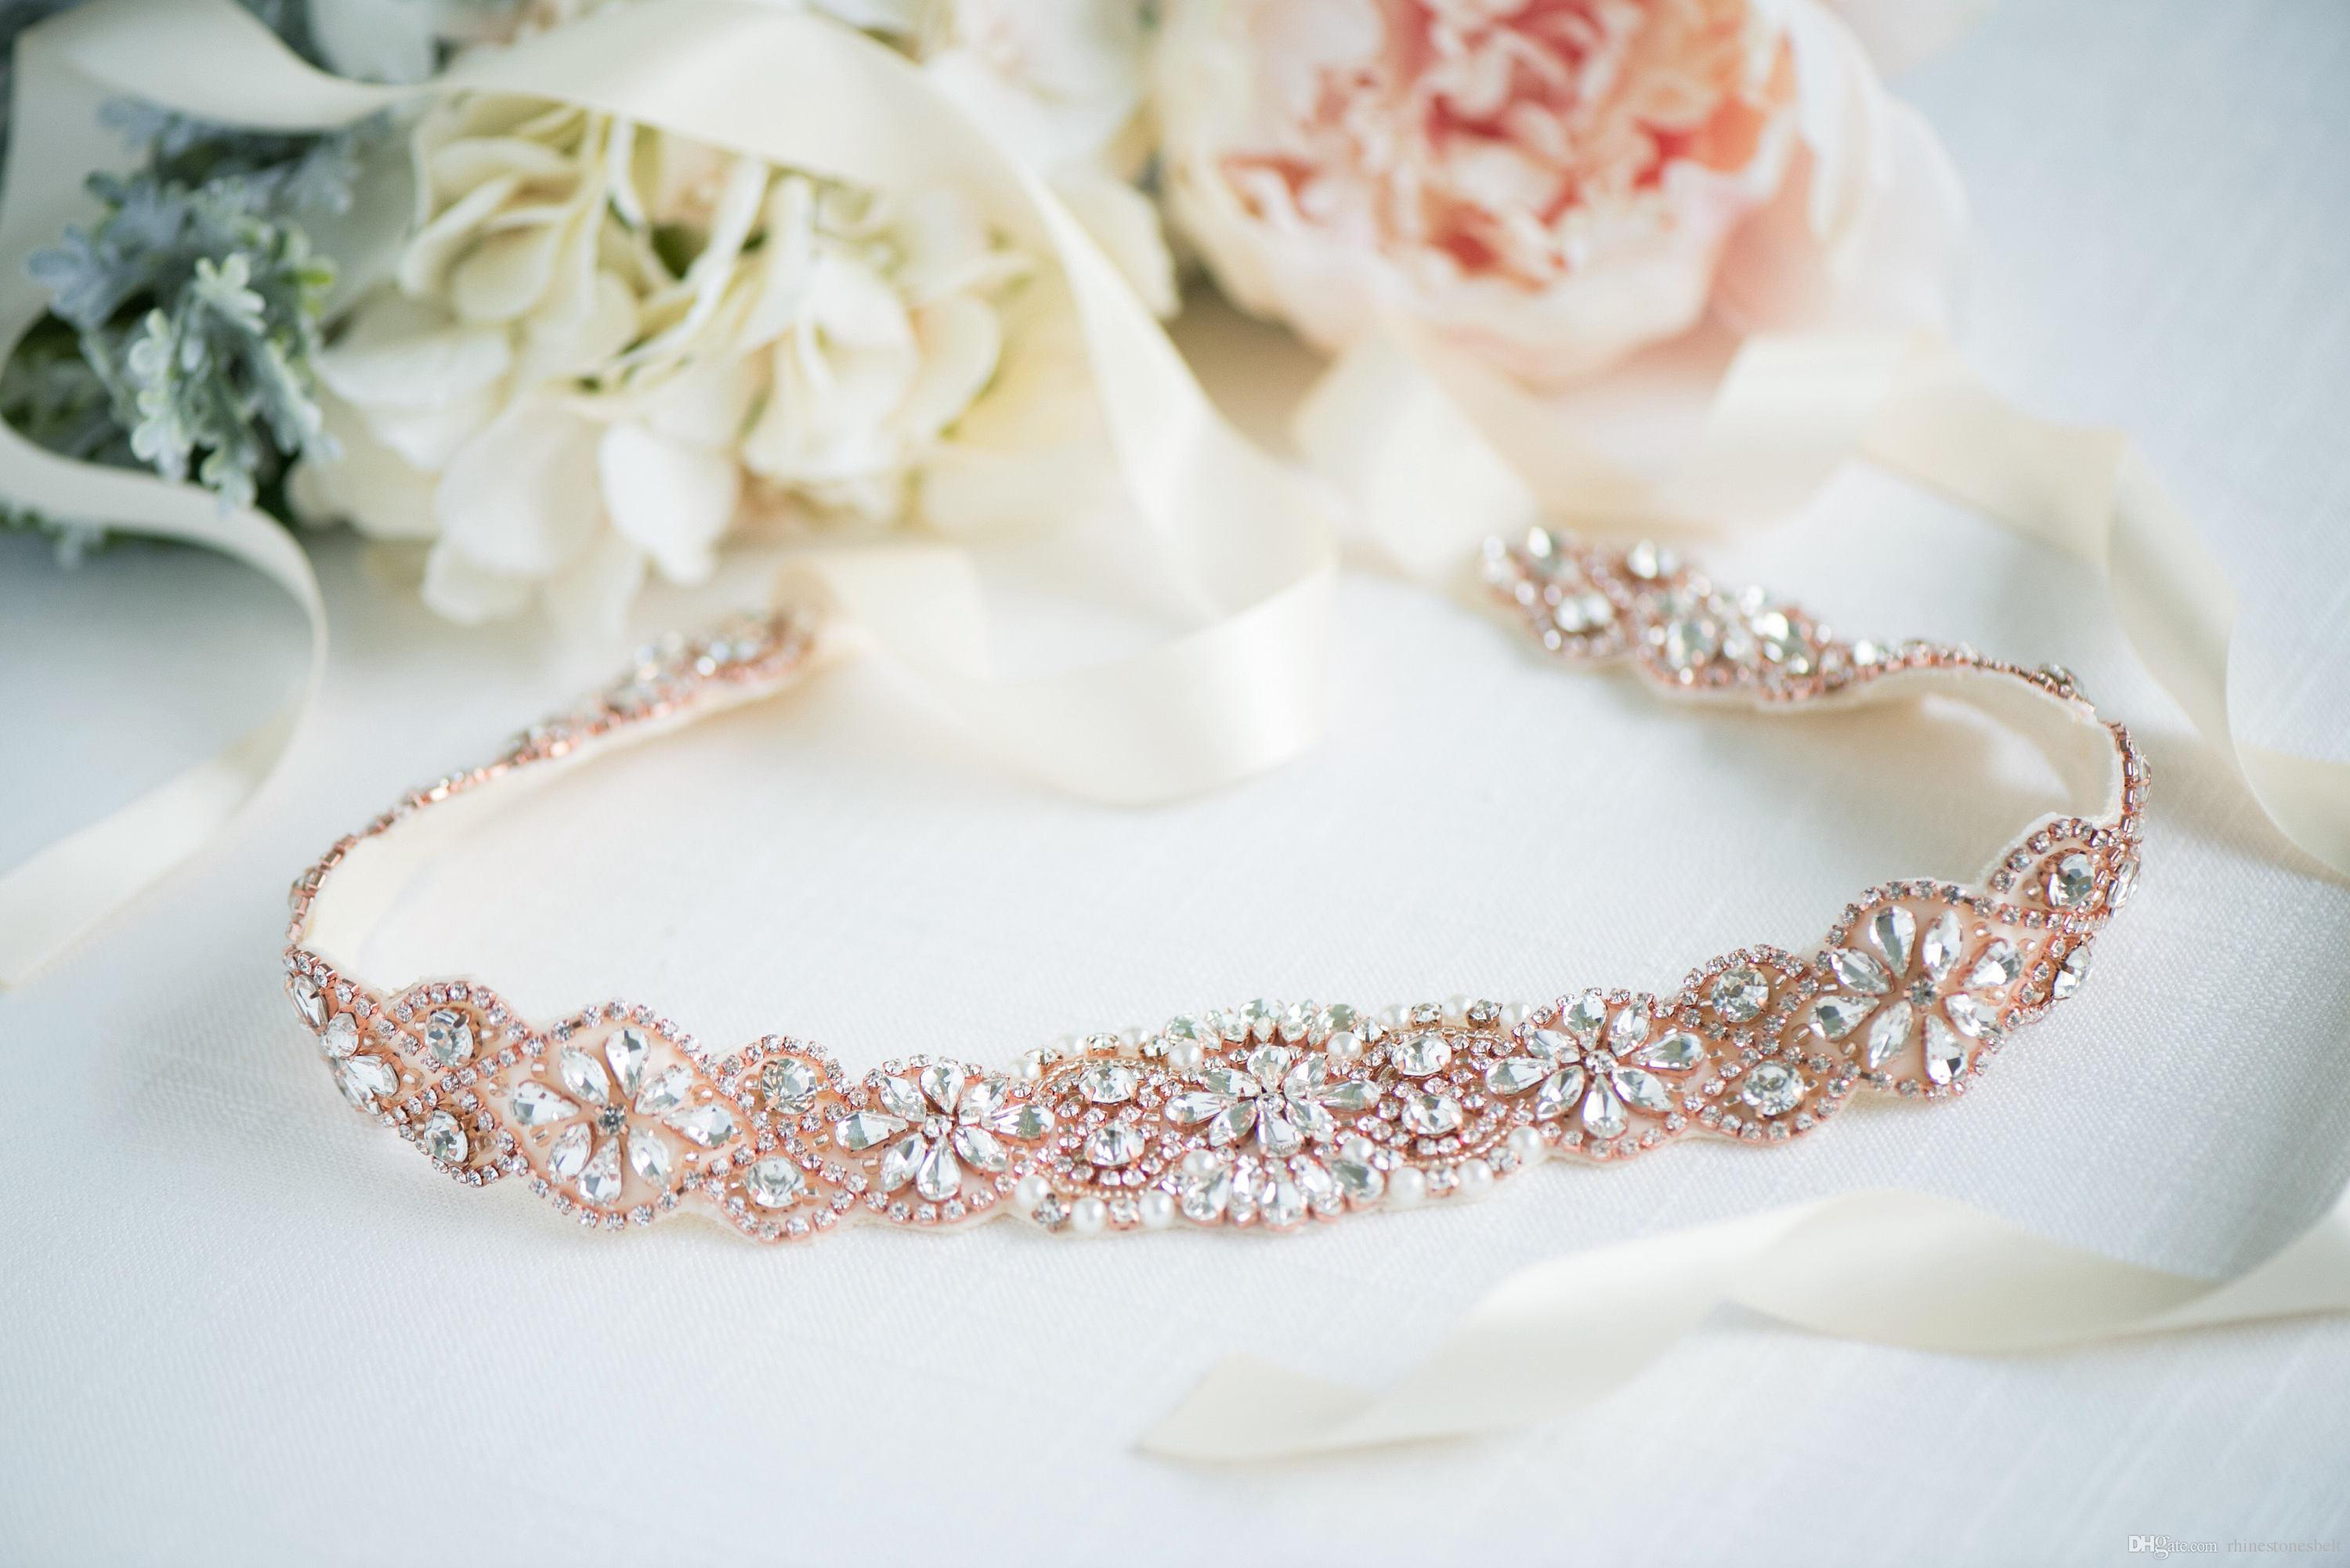 Wedding Belt Clear Crystal Rose Gold 57cm Length Rhinestones Appliques Sewing on Bridal Sashes Wedding Dresses Sashes Bridal Accessories T44